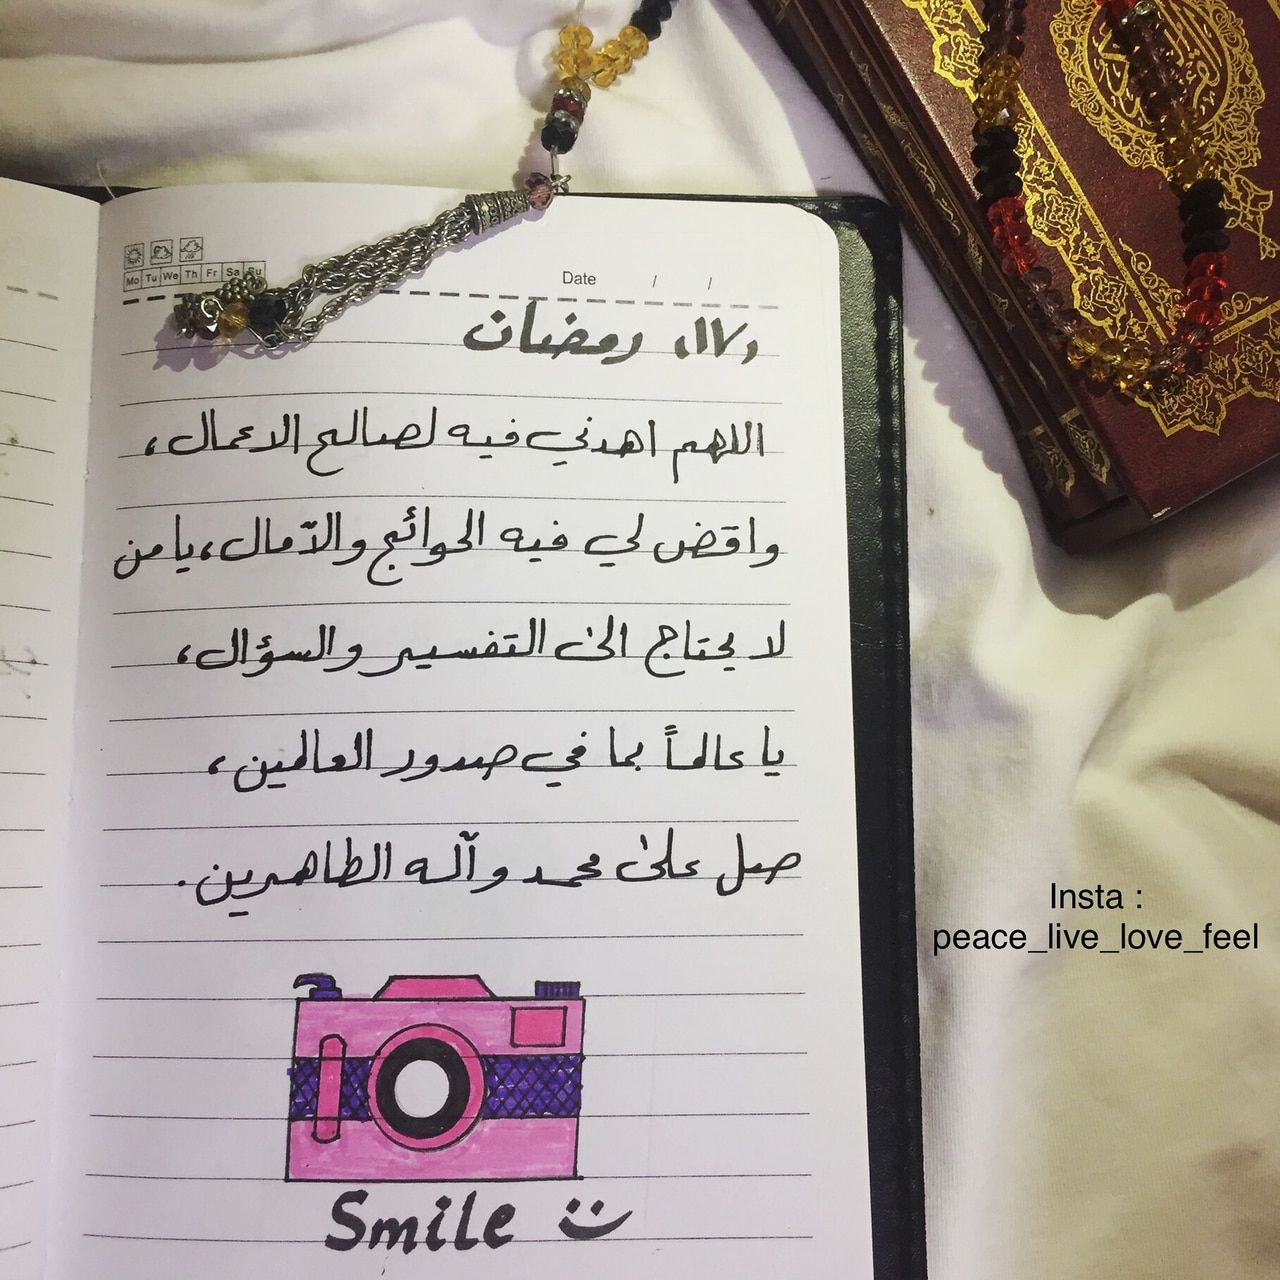 Image Shared By Masa Soso Find Images And Videos About Tumblr Quote And Smile On We Heart It The App To Get Lo In 2021 Ramadan Quotes Ramadan Day Ramadan Greetings